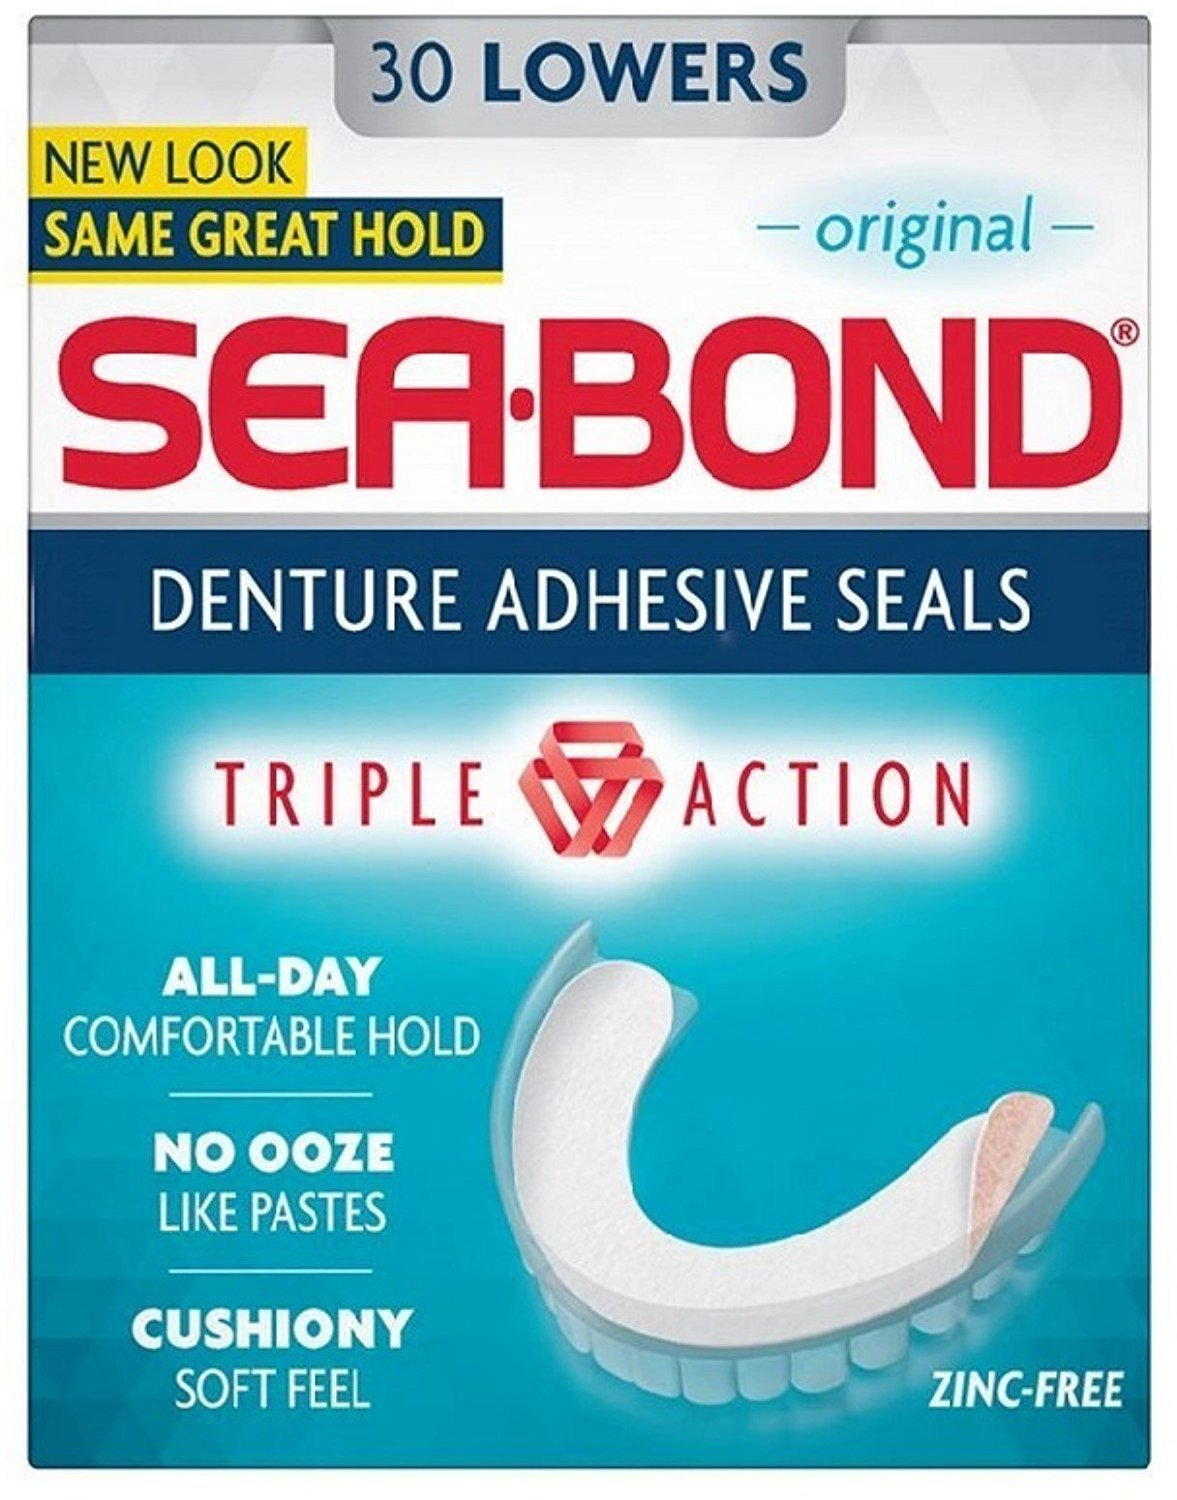 Sea-Bond Denture Adhesive Seals Lowers, Original - 30 ea., Pack of 3 COMBE INCORPORATED